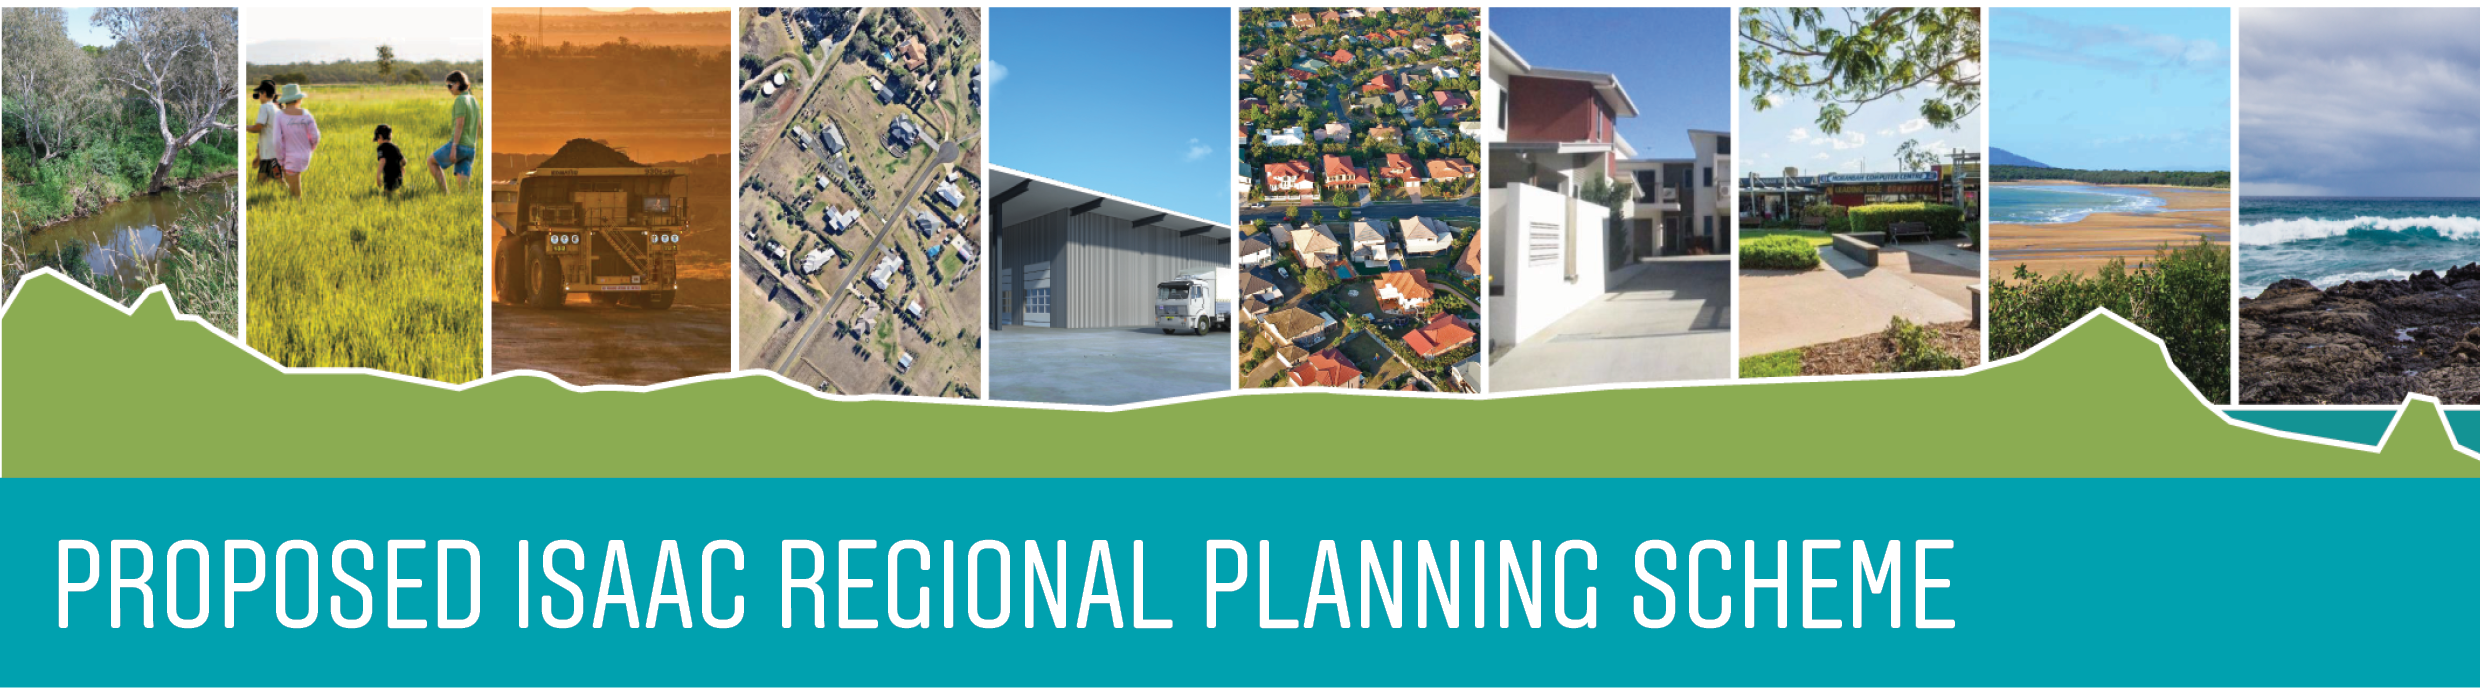 Proposed Isaac Regional Planning Scheme banner